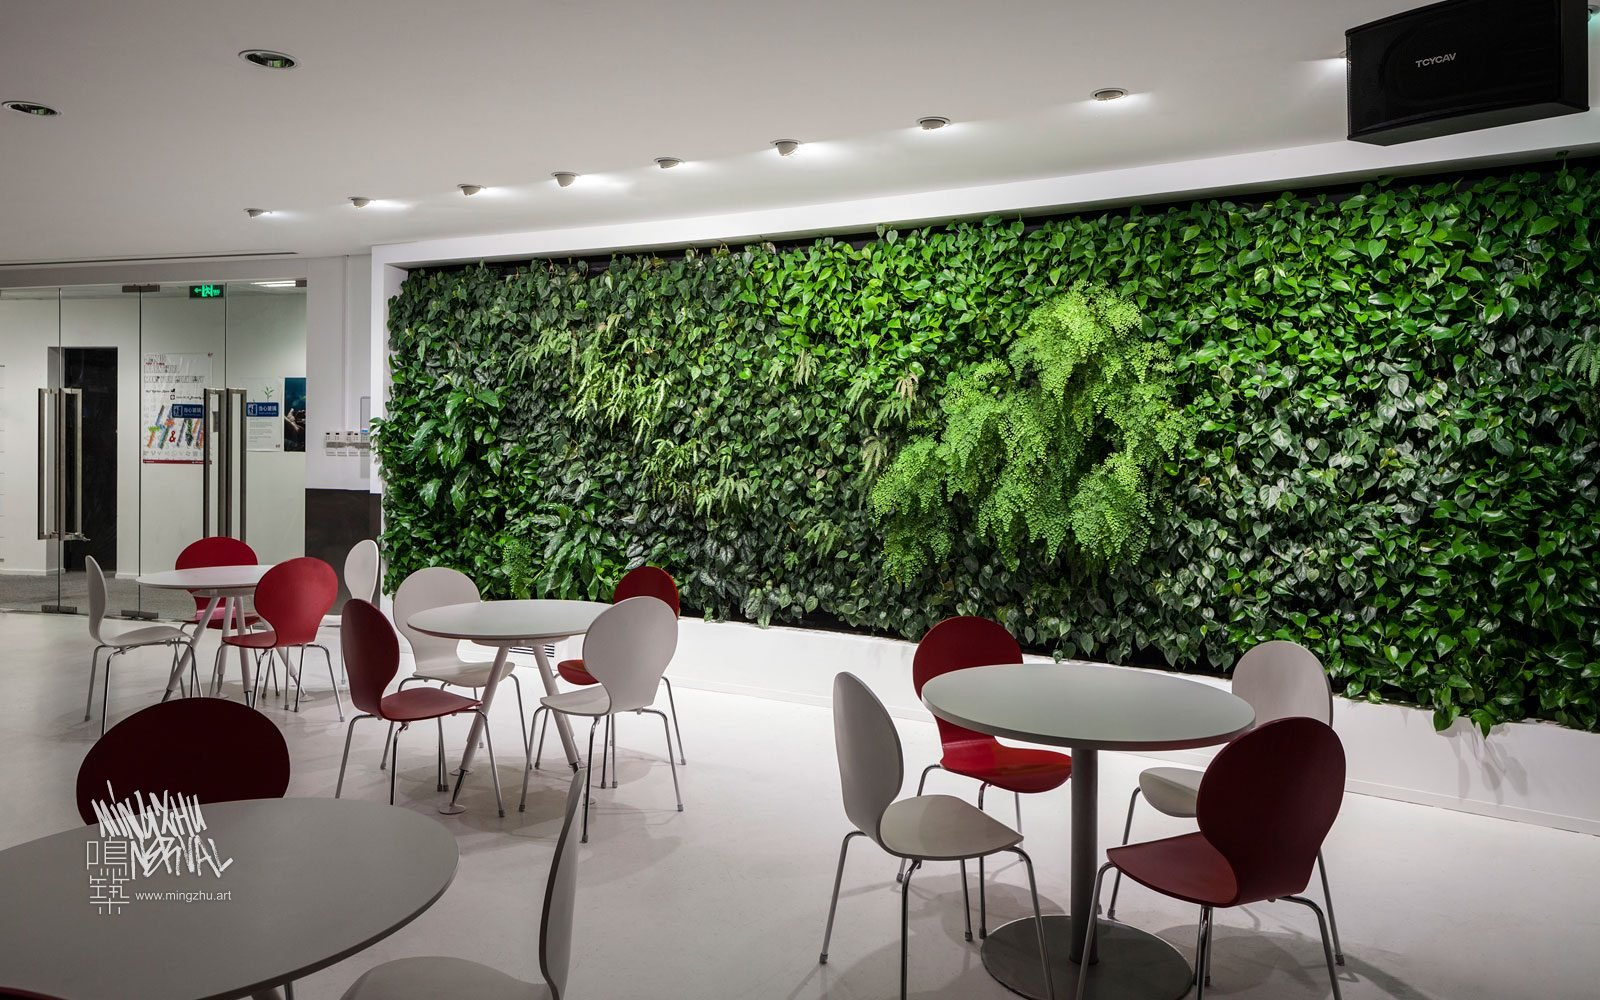 At Mingzhu Nerval, we thrive at creating the most beautiful vertical gardens in the world. For H&M, we created a classy living wall design - Shanghai, 2012.